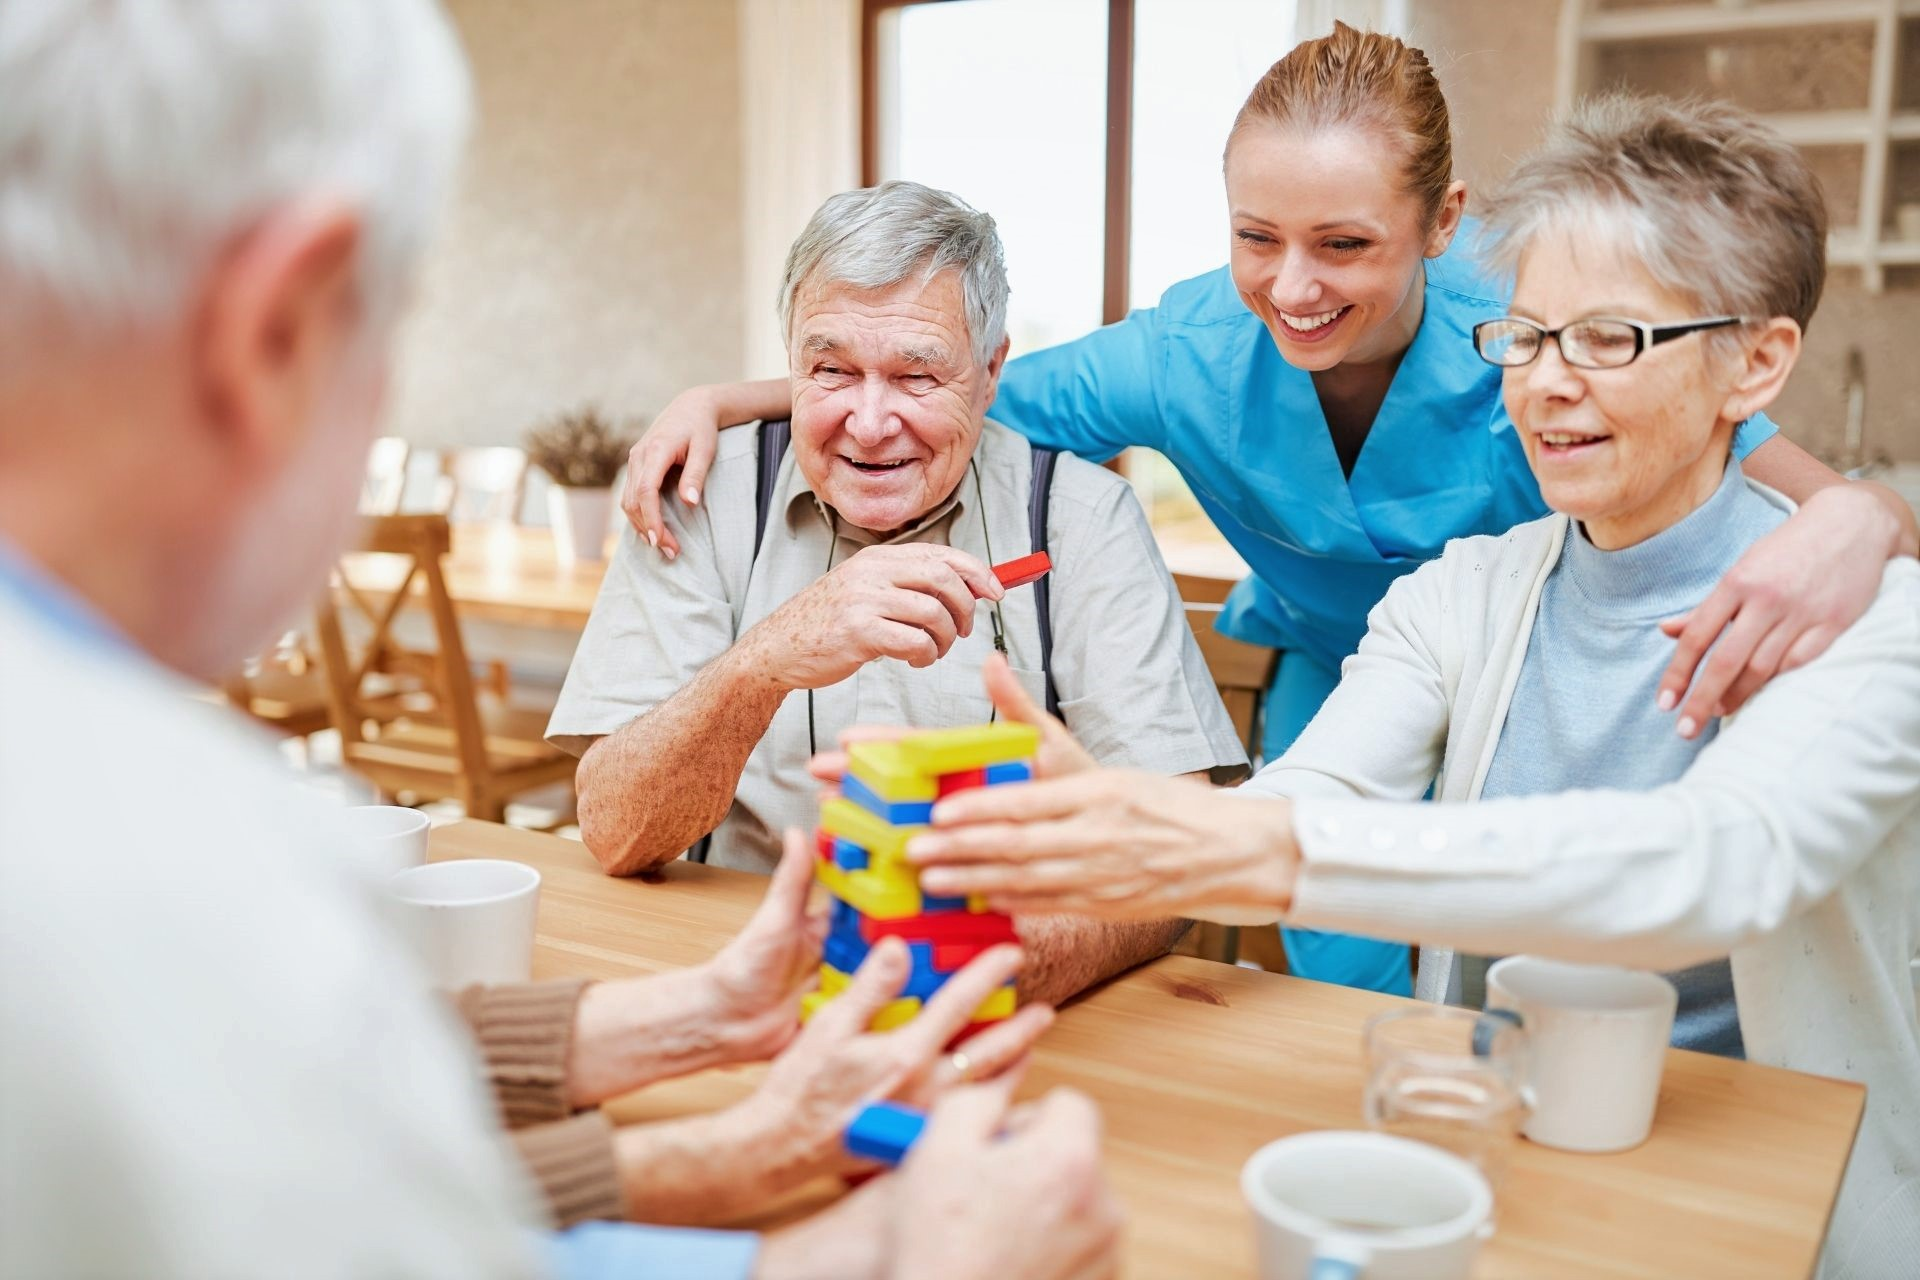 Aged care provider automates accounts payable and statement reconciliation processes